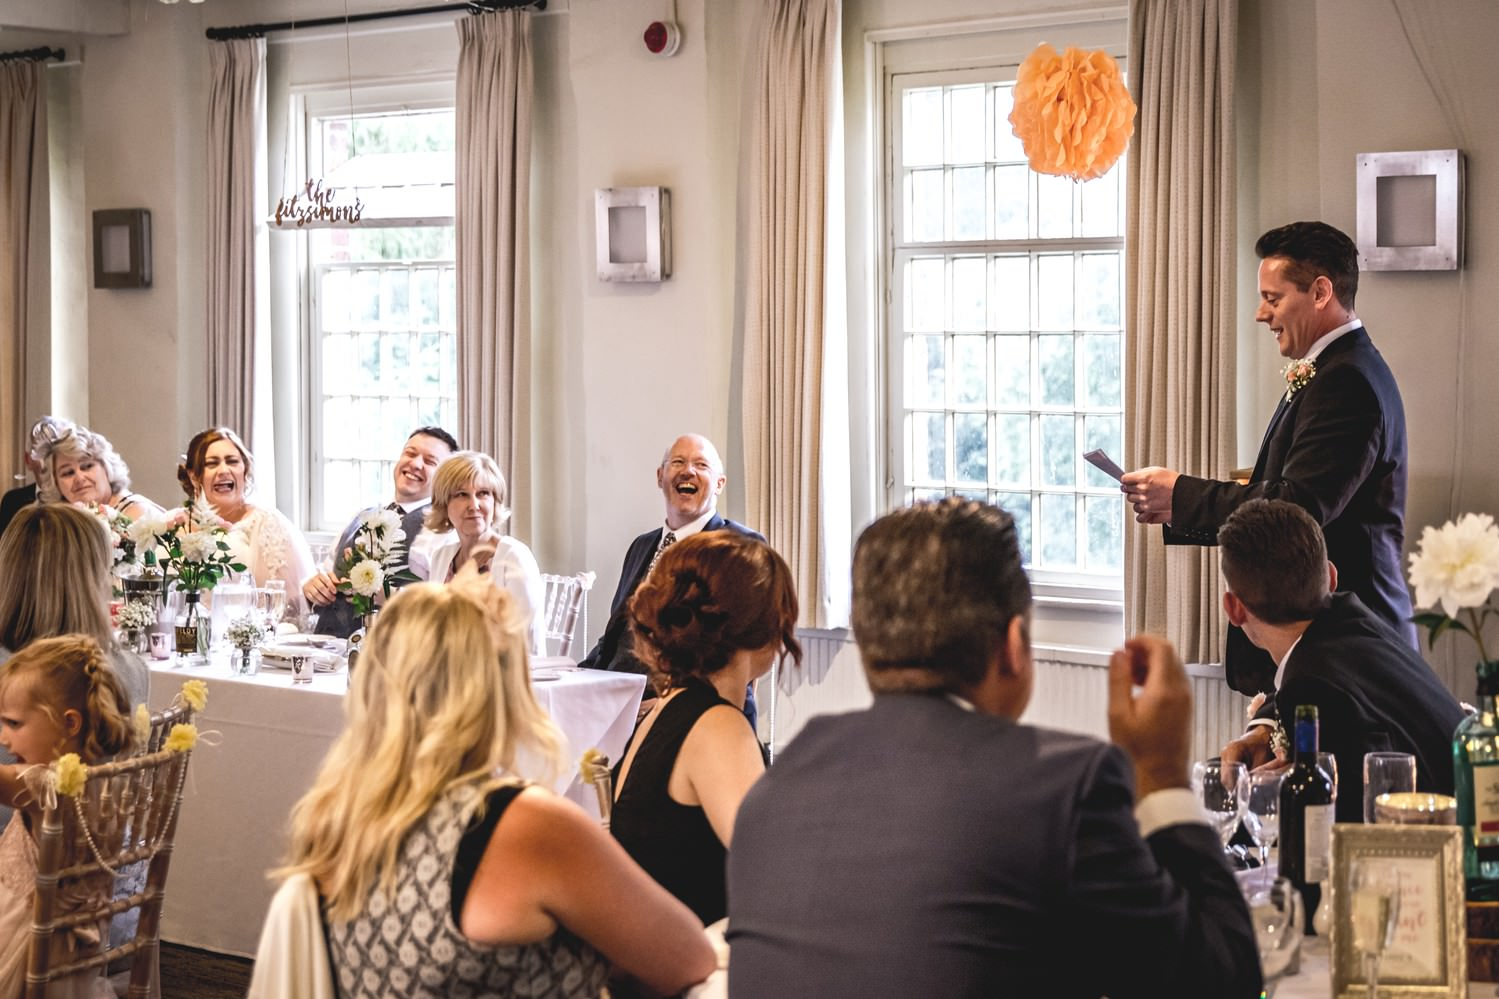 Candid Wedding Photographer North London - Tom Hosking